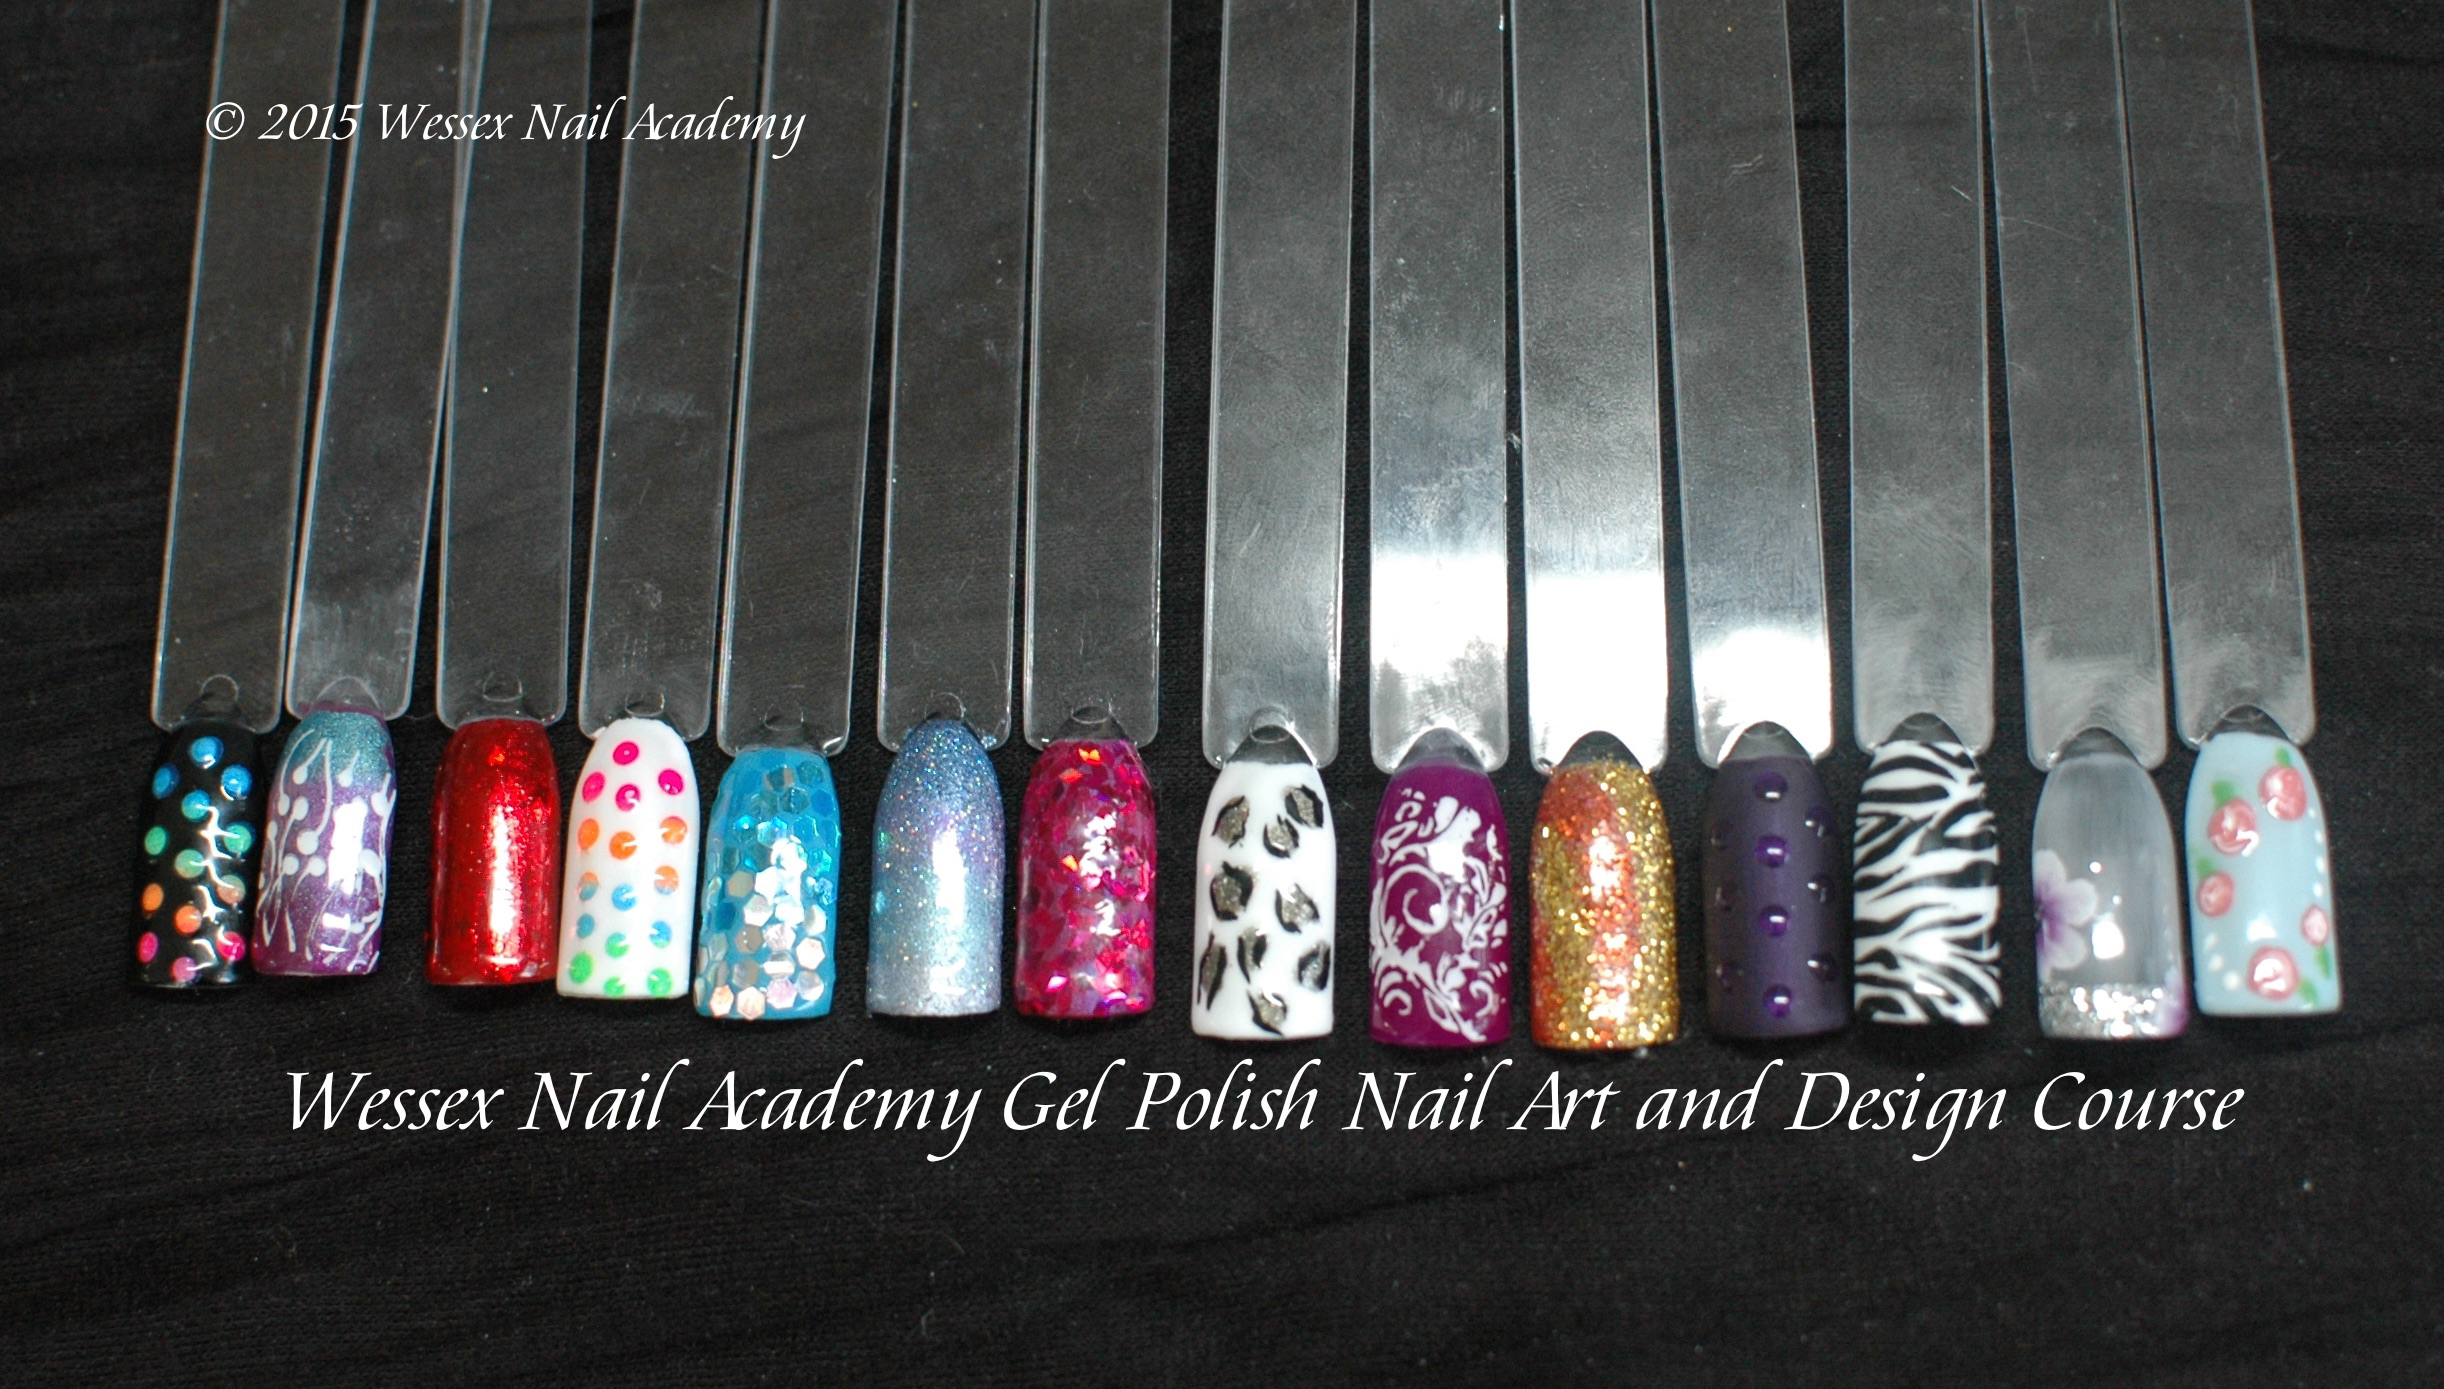 Nail Art Course Students Work, Nail extension training, nail training course, Wessex Nail Academy Okeford Fitzpaine, Dorset